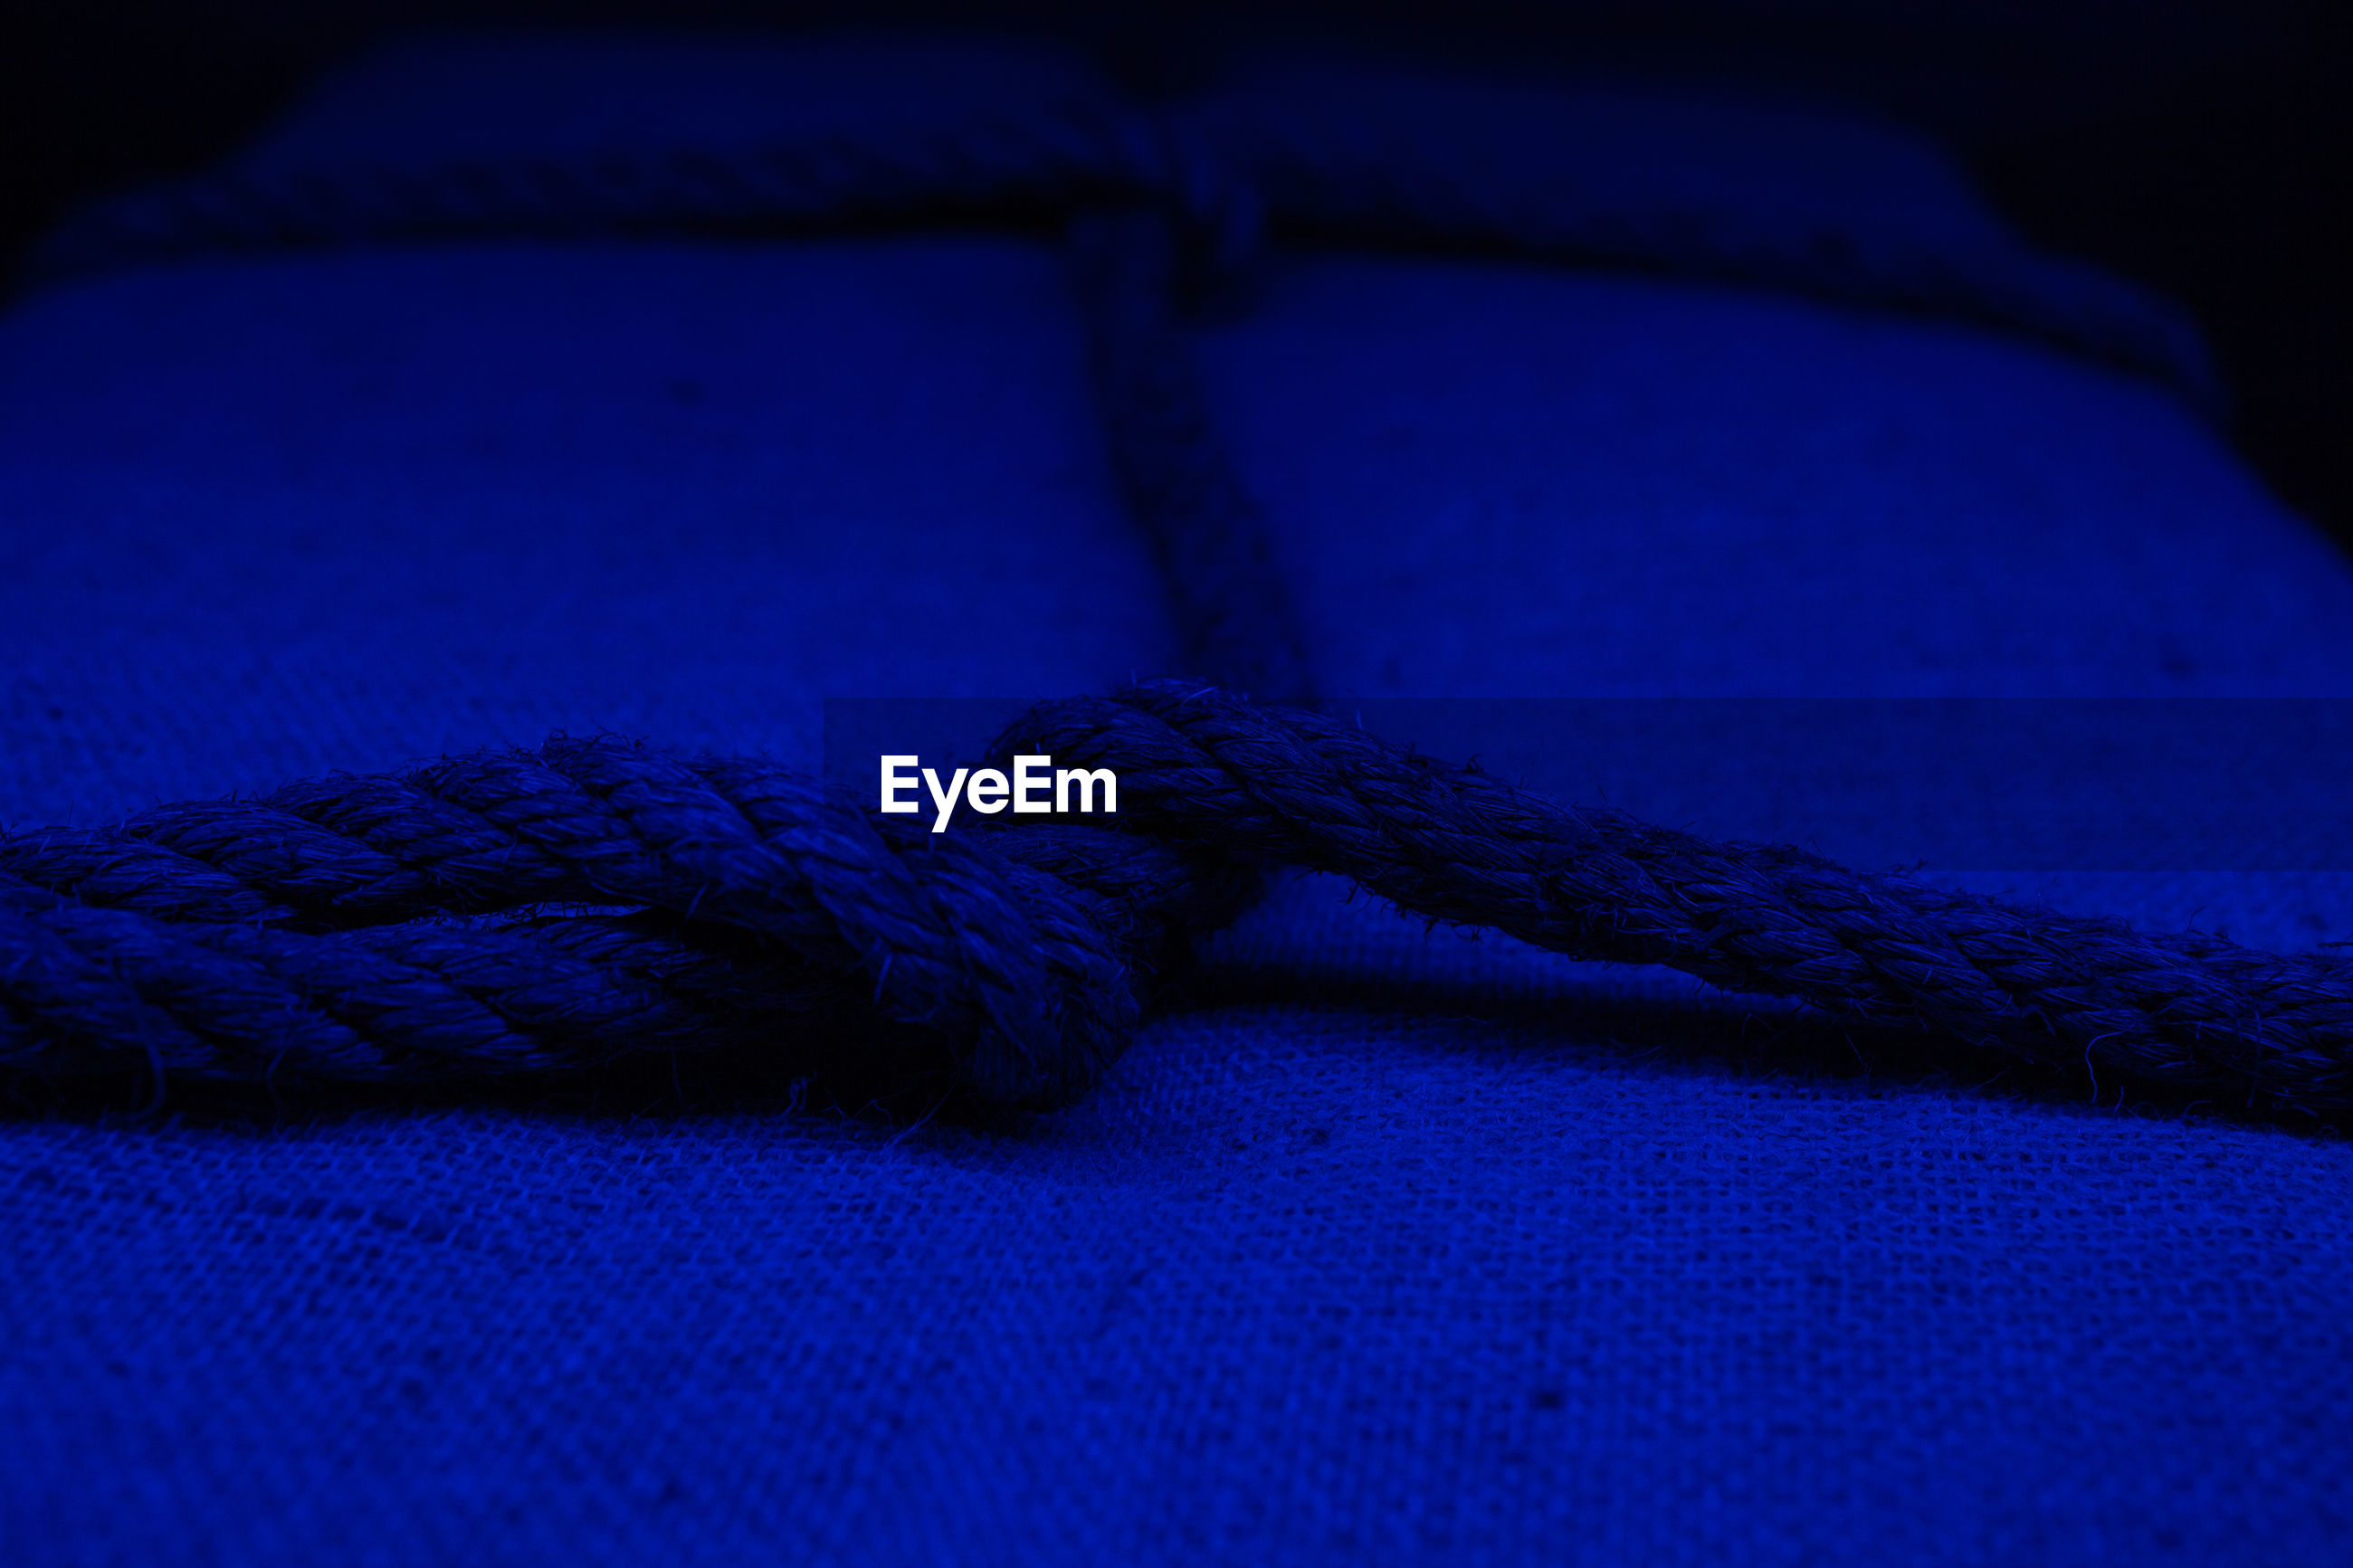 High angle view of rope tied up on fabric